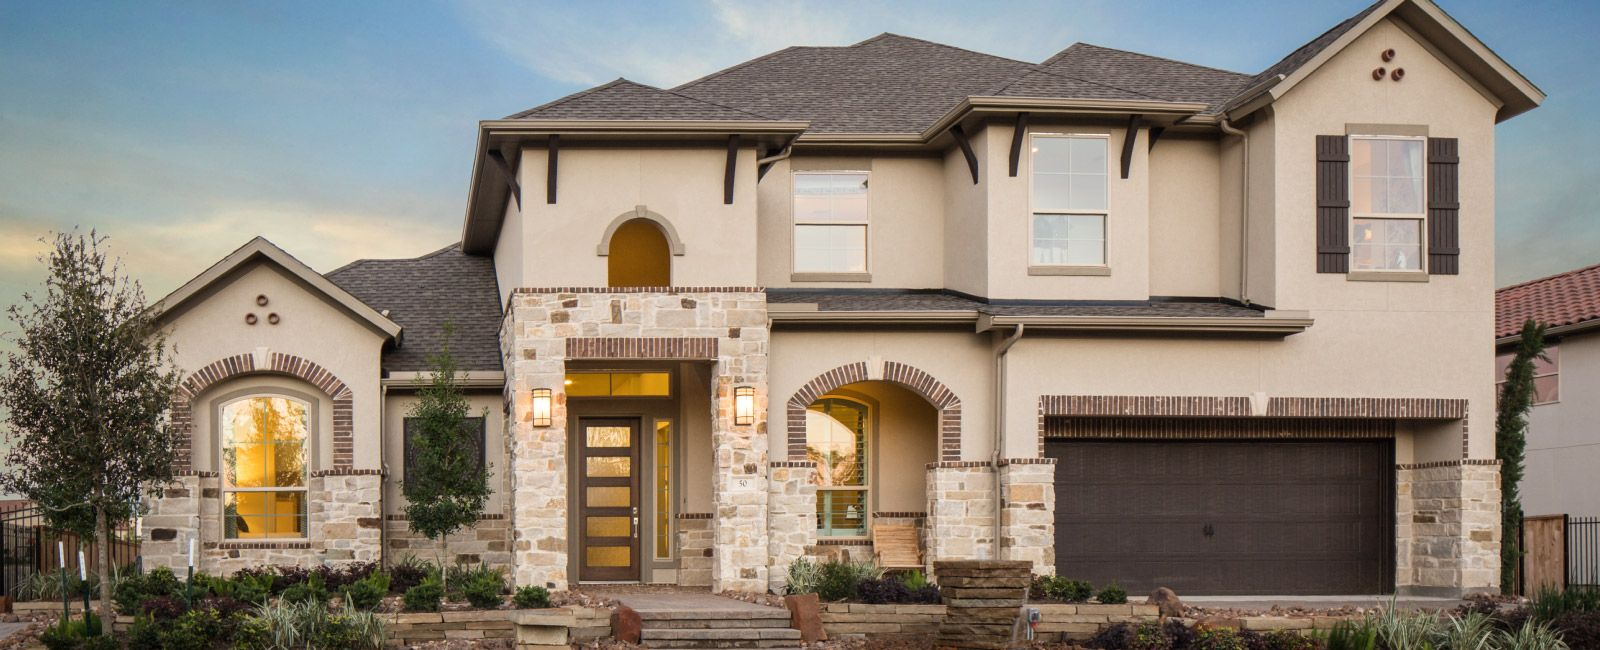 Building Or Community At 50 Jaden Oaks The Woodlands Texas 77375 United